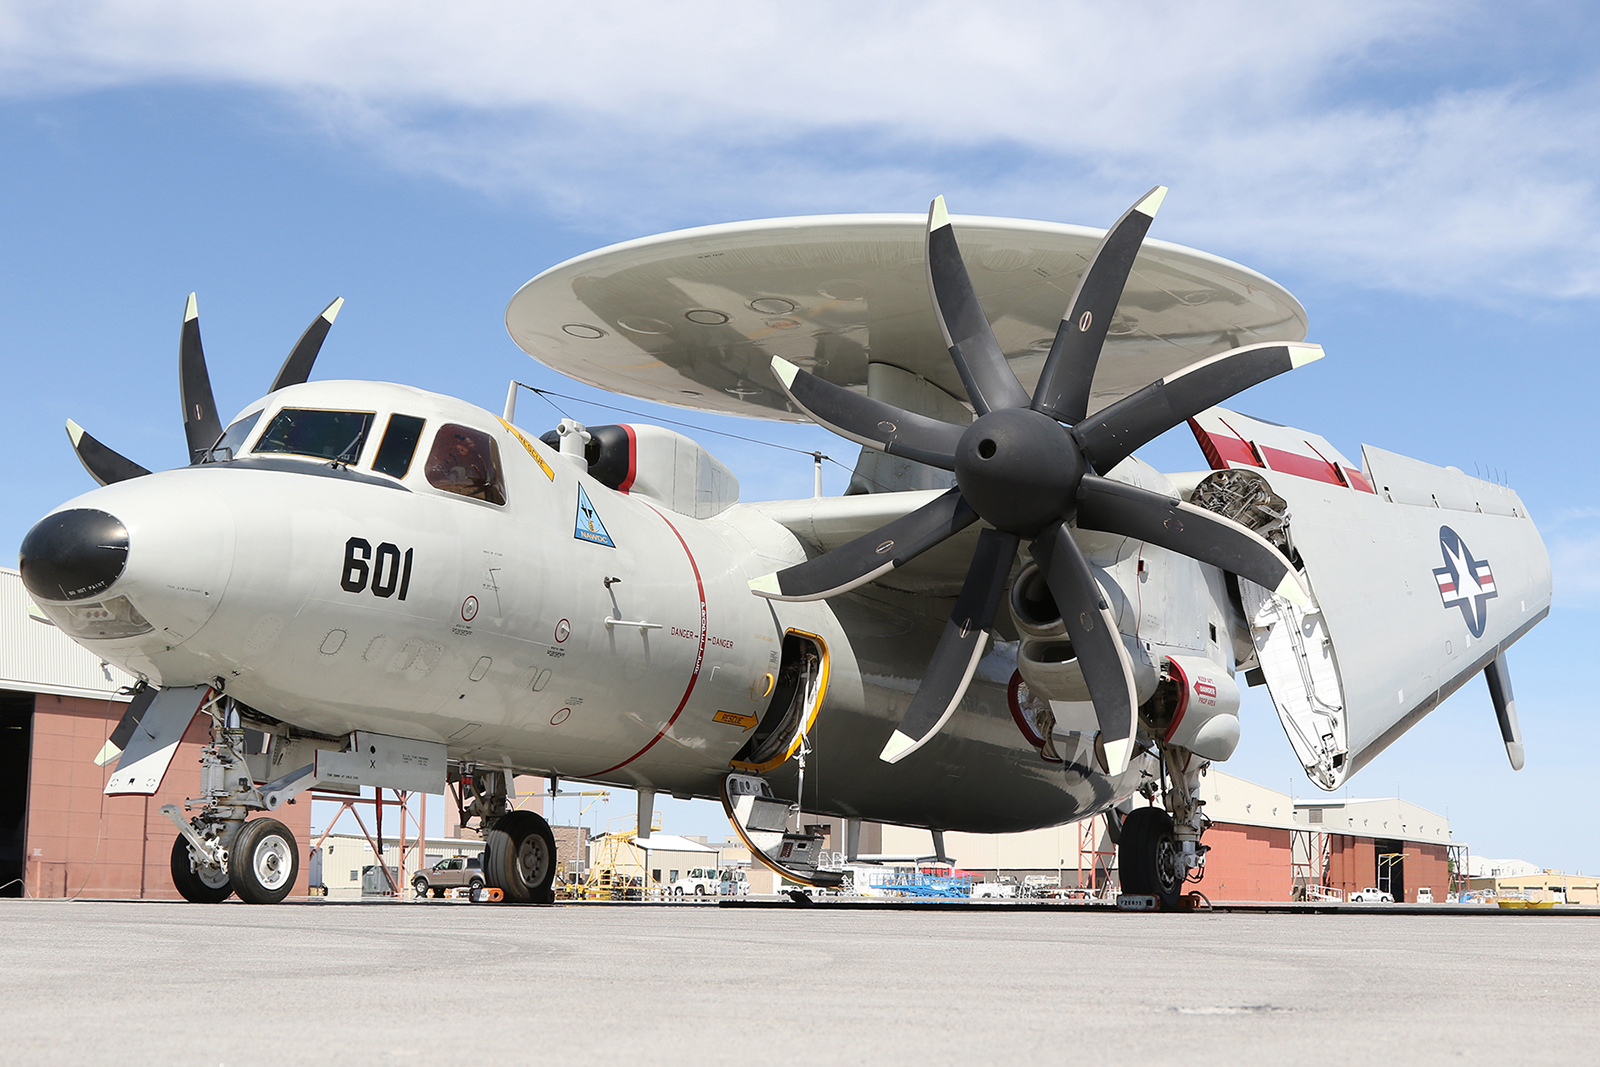 E-2D Hawkeye assigned to NAWDC © Paul Dunn - Global Aviation Resource